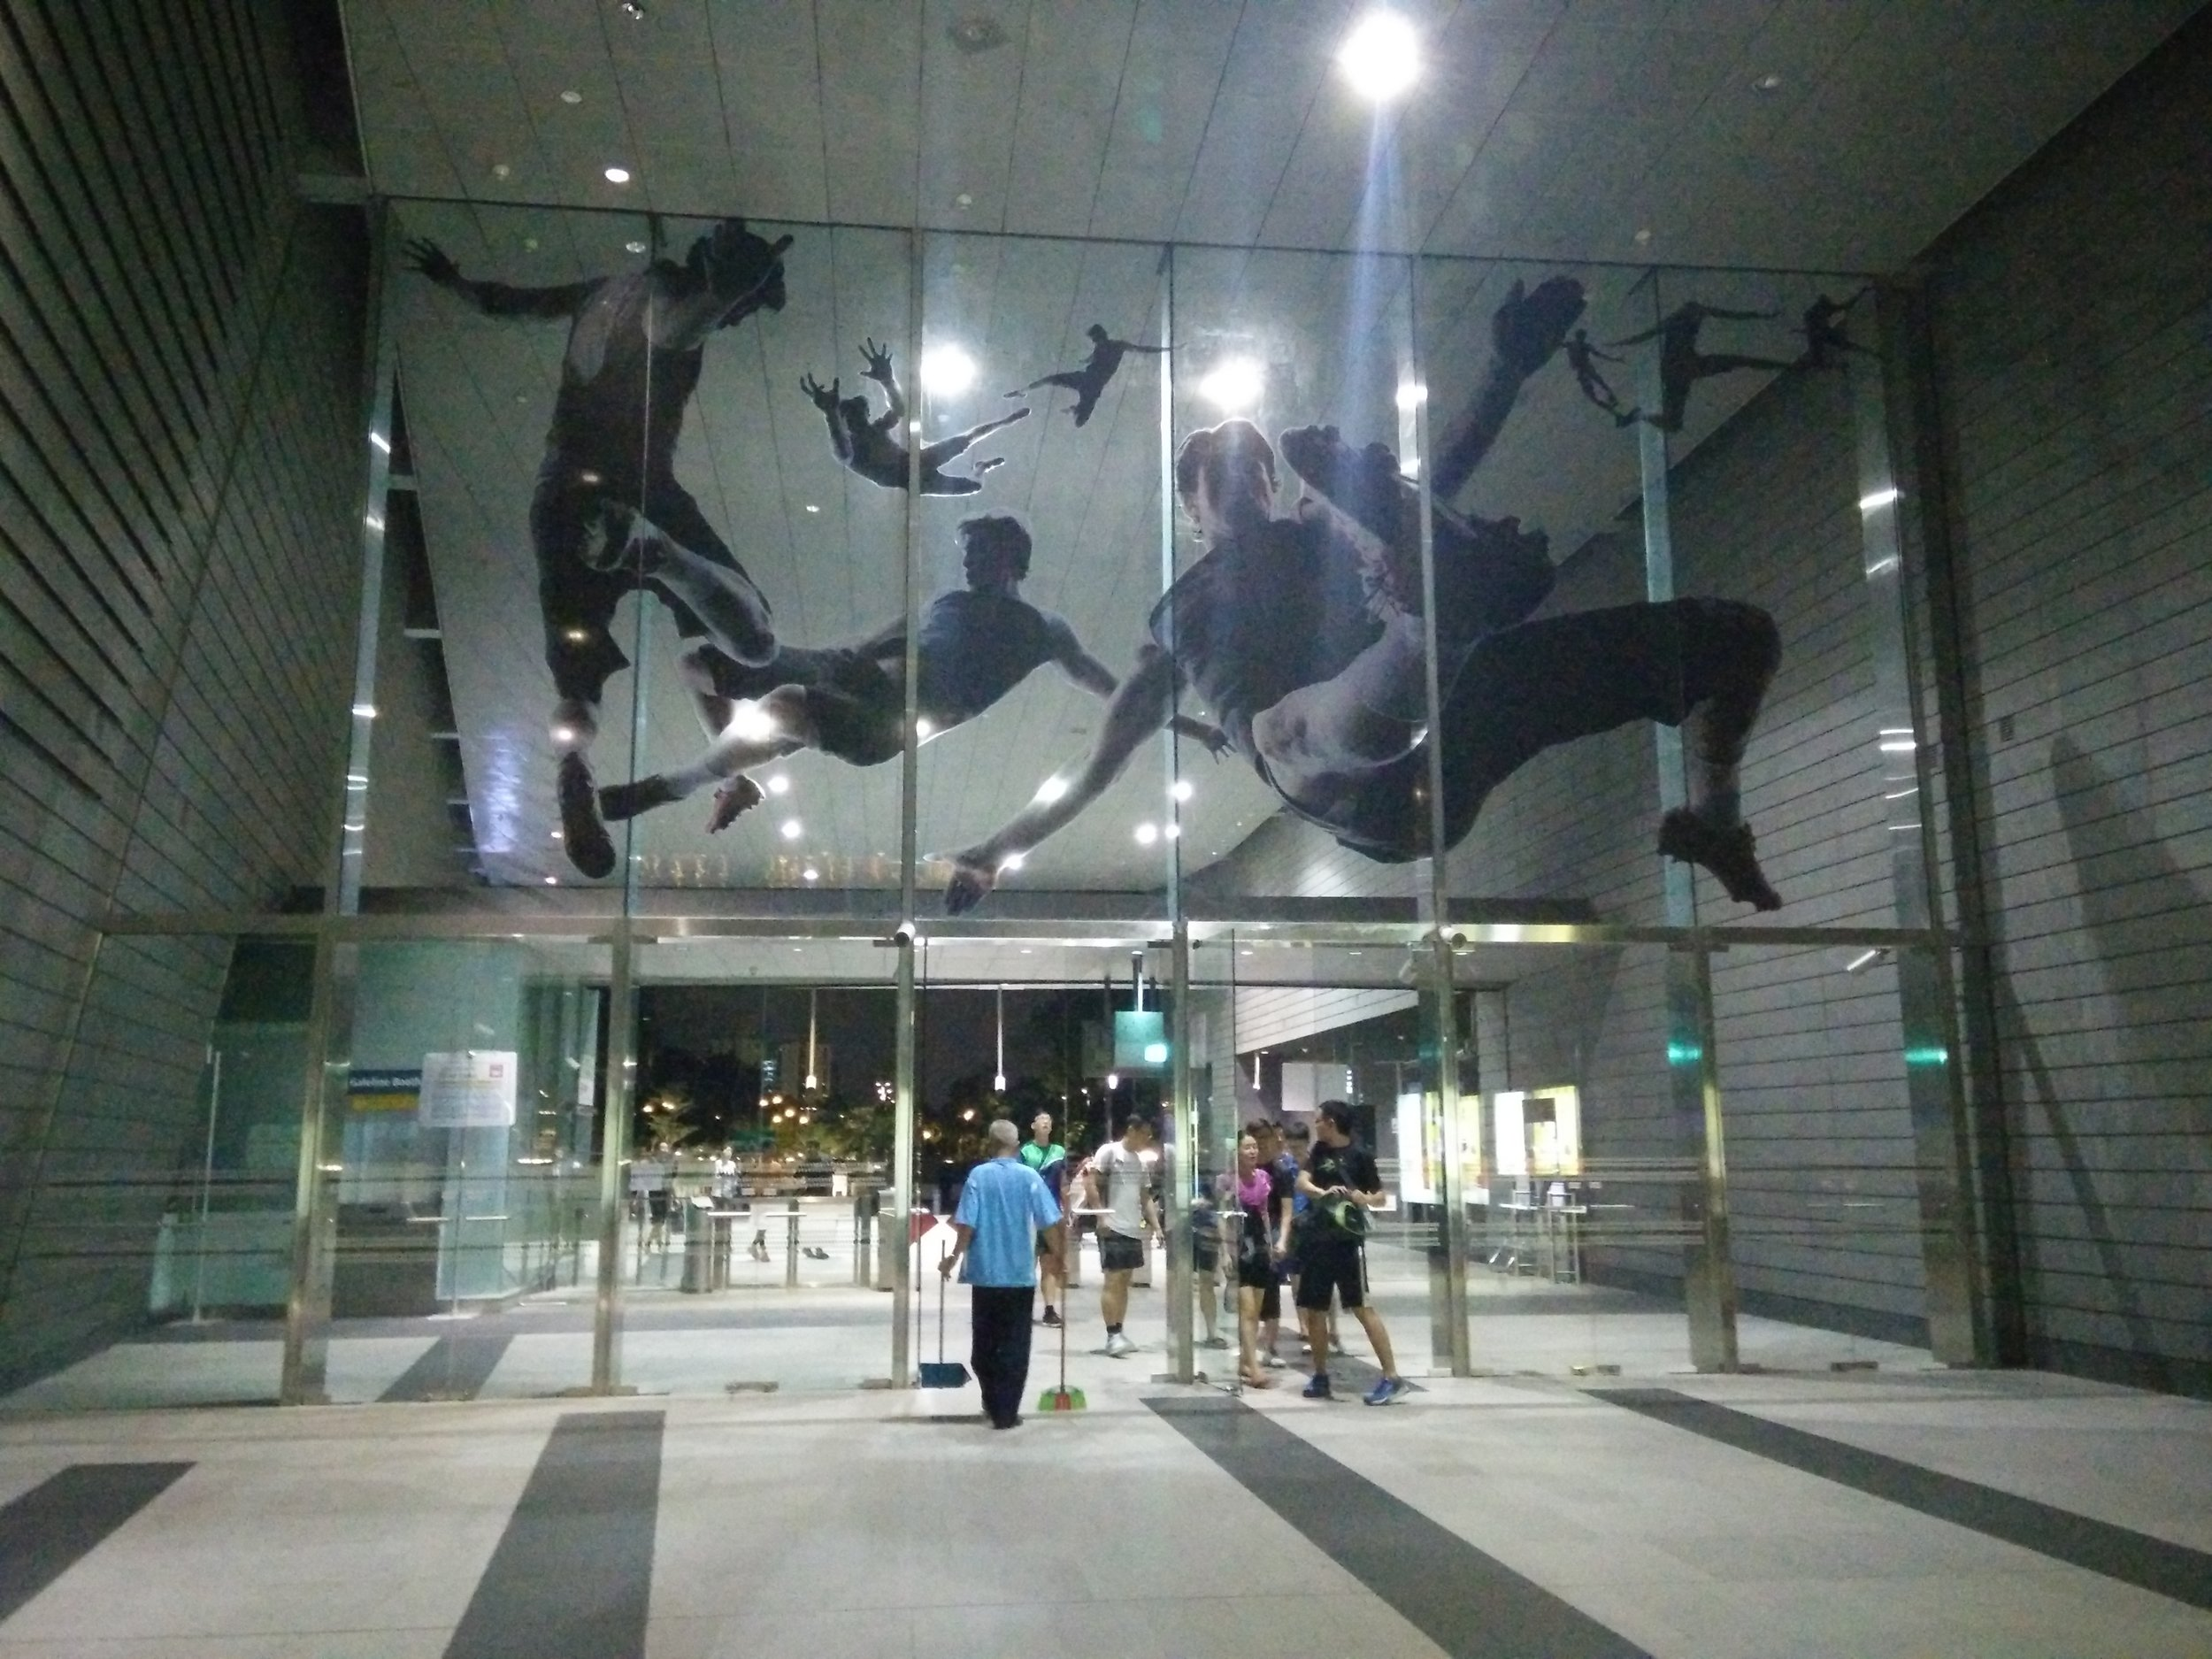 Movement in sports  - art at the Stadium MRT station